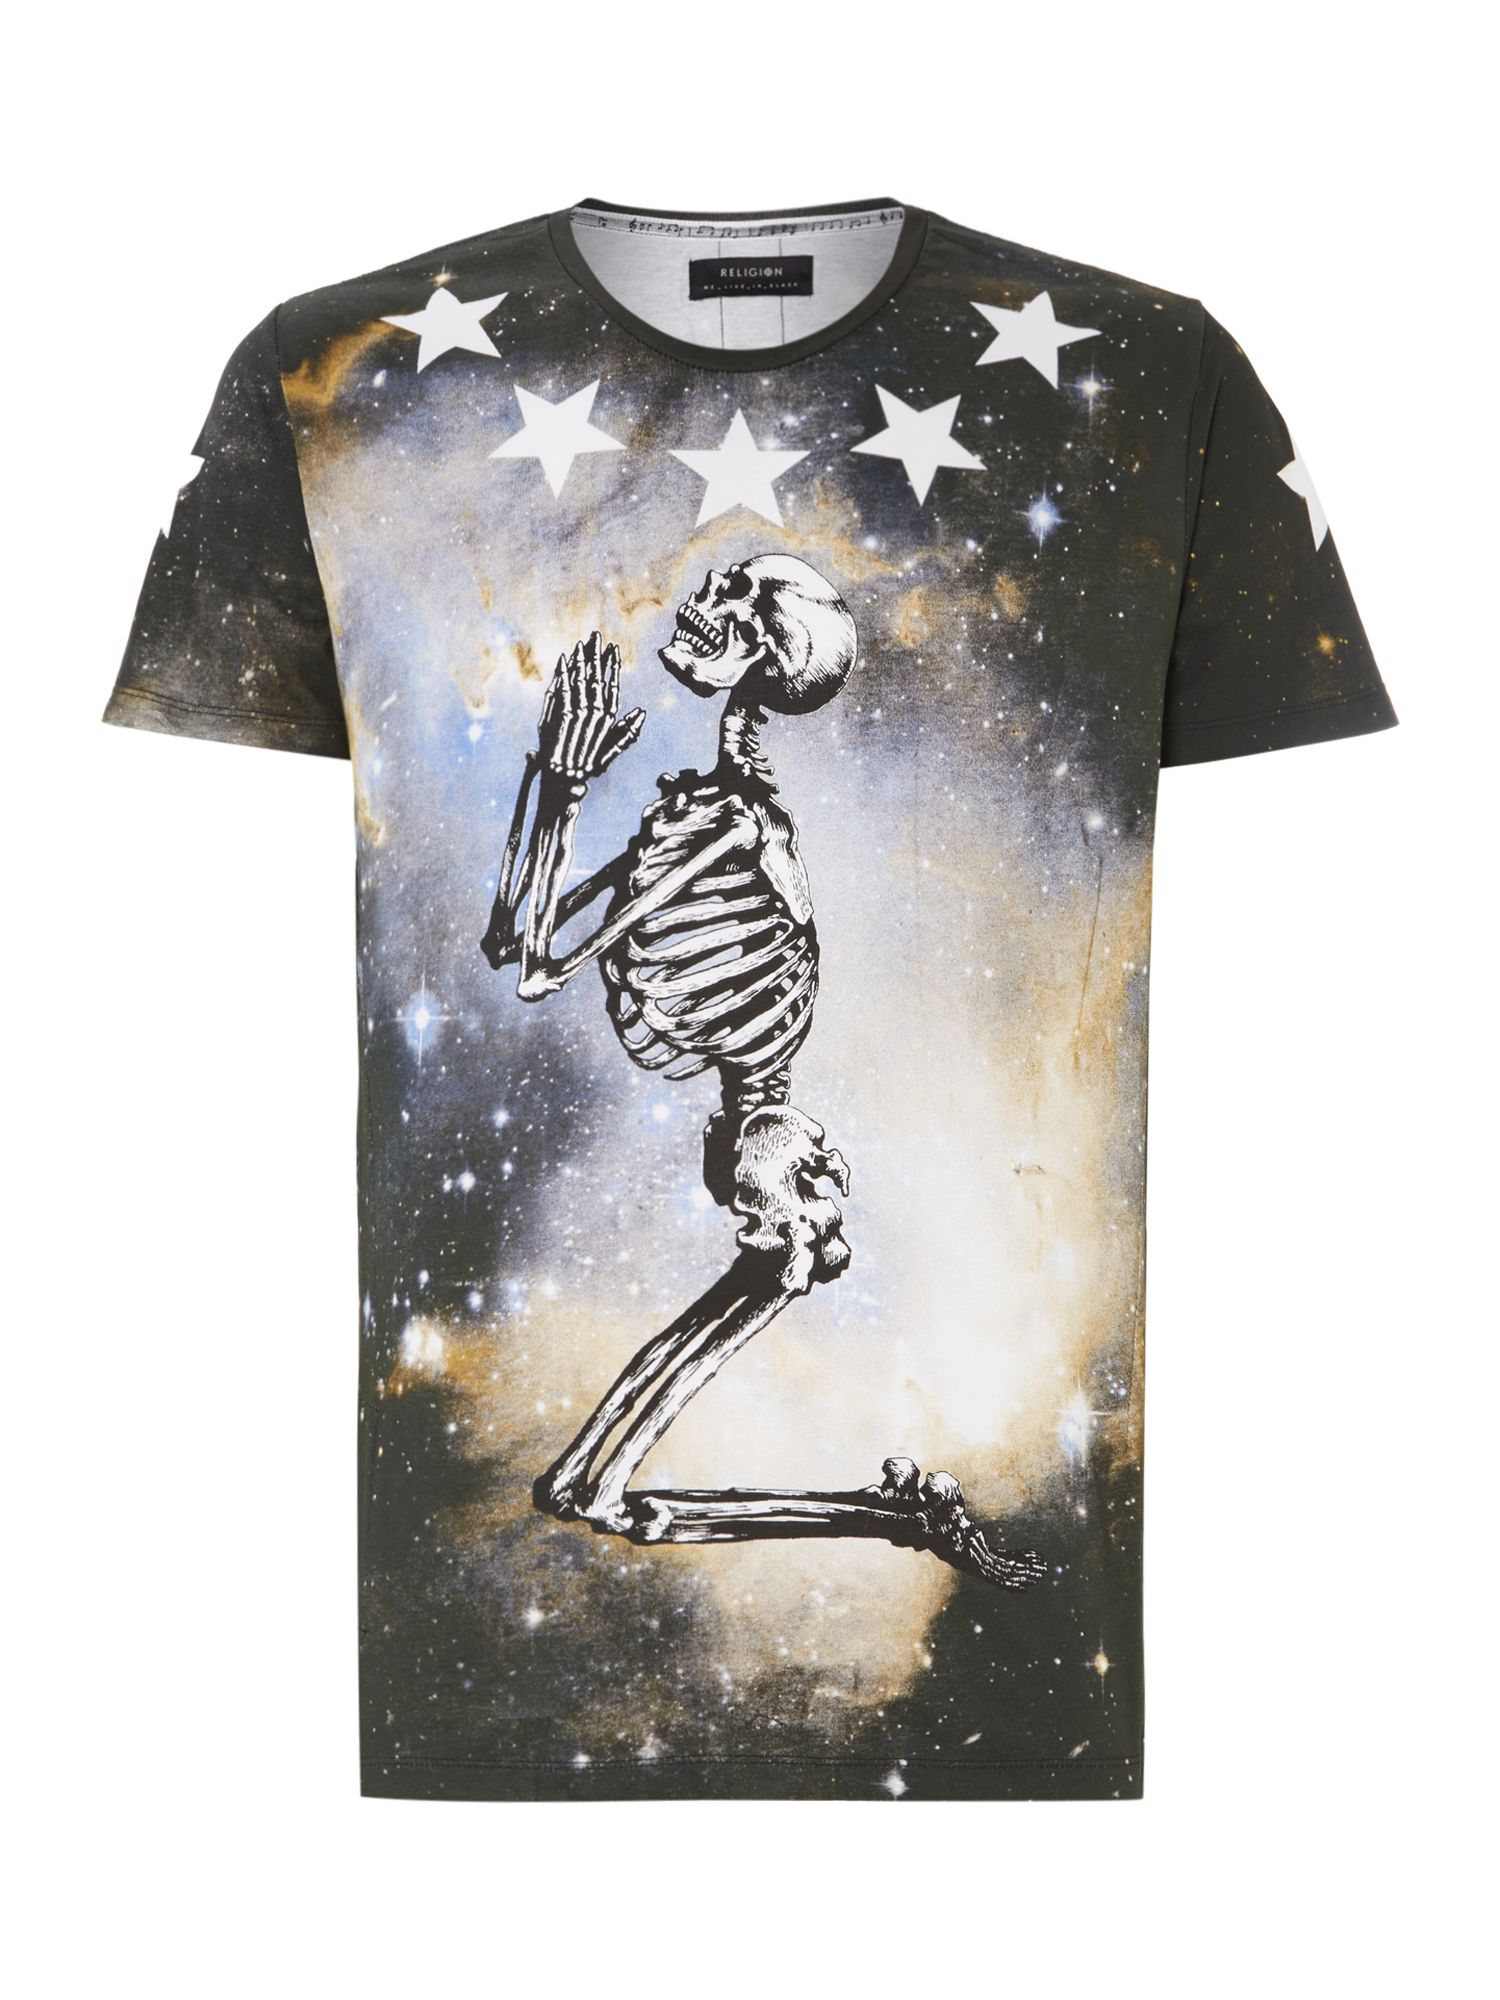 Star skeleton graphic t shirt